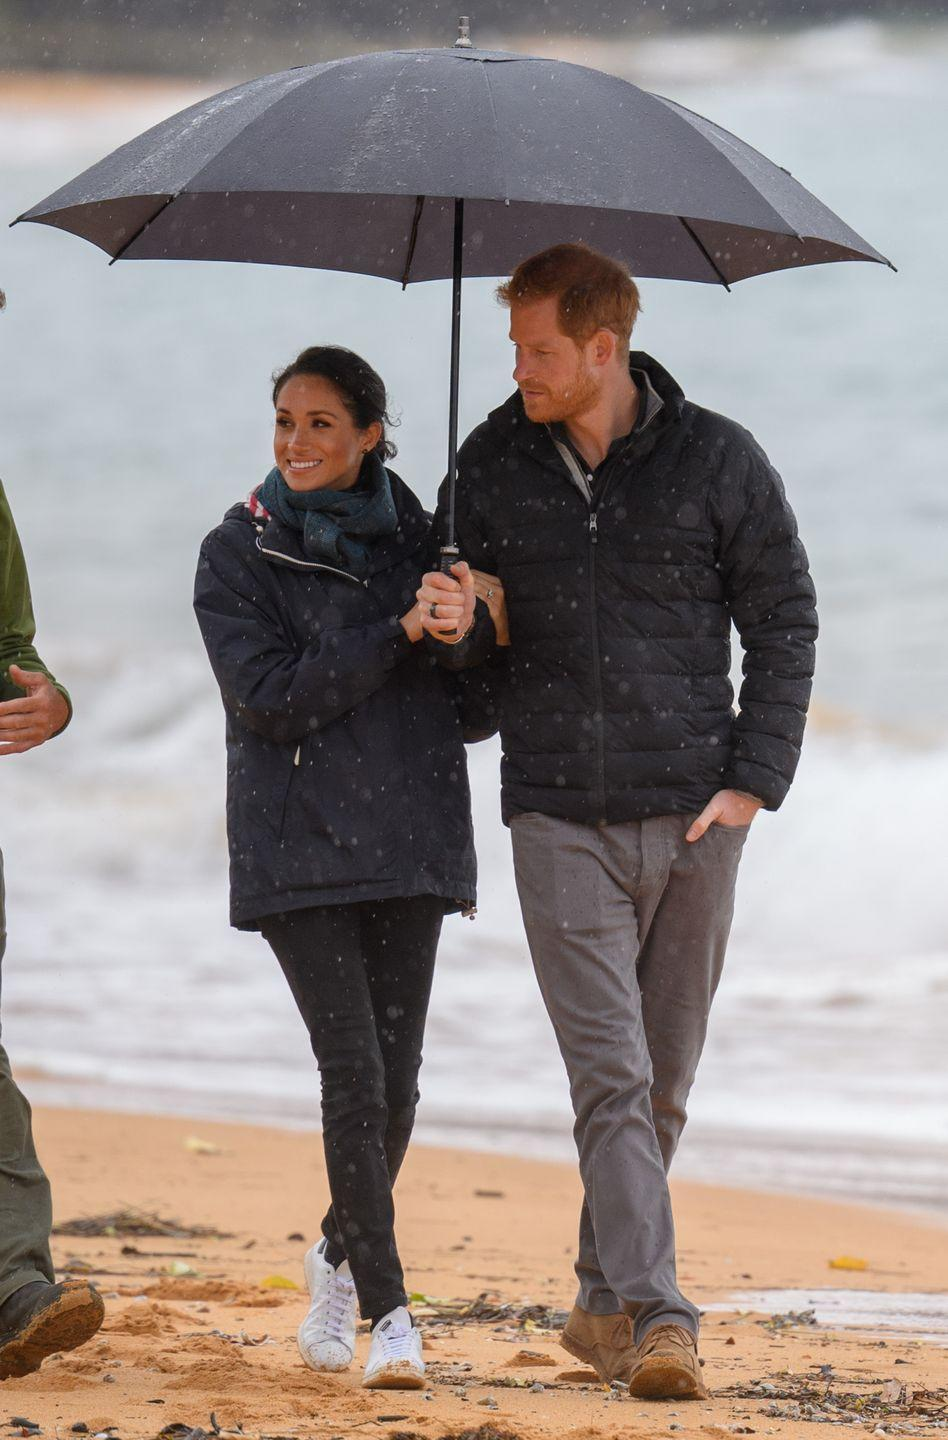 """<p>The Duke and Duchess visited Abel Tasman National Park, where they learned about conservation programs. Both Harry and Meghan bundled up for the stormy weather, with Meghan wearing a coat and scarf over with <a href=""""https://outlanddenim.ca/products/harriet-in-black-1?variant=12431424815201"""" rel=""""nofollow noopener"""" target=""""_blank"""" data-ylk=""""slk:Outland Denim's Harriet jeans."""" class=""""link rapid-noclick-resp"""">Outland Denim's Harriet jeans.</a> According to <a href=""""http://meghansmirror.com/royal-style/royal-tours/royal-tour-australia/meghan-harry-travel-to-abel-tasman-park/"""" rel=""""nofollow noopener"""" target=""""_blank"""" data-ylk=""""slk:Meghan's Mirror,"""" class=""""link rapid-noclick-resp"""">Meghan's Mirror,</a> the Duchess also wore Stella McCartney x Adidas """"Stan Smith"""" collaboration sneaker. </p><p><a class=""""link rapid-noclick-resp"""" href=""""https://go.redirectingat.com?id=74968X1596630&url=https%3A%2F%2Fwww.bergdorfgoodman.com%2FStella-McCartney-Stan-Smith-Collab-Sneakers%2Fprod140020073%2Fp.prod&sref=https%3A%2F%2Fwww.townandcountrymag.com%2Fstyle%2Ffashion-trends%2Fg3272%2Fmeghan-markle-preppy-style%2F"""" rel=""""nofollow noopener"""" target=""""_blank"""" data-ylk=""""slk:SHOP NOW"""">SHOP NOW</a> <em>Stella McCartney x Adidas Stan Smith sneaker, $325</em></p>"""